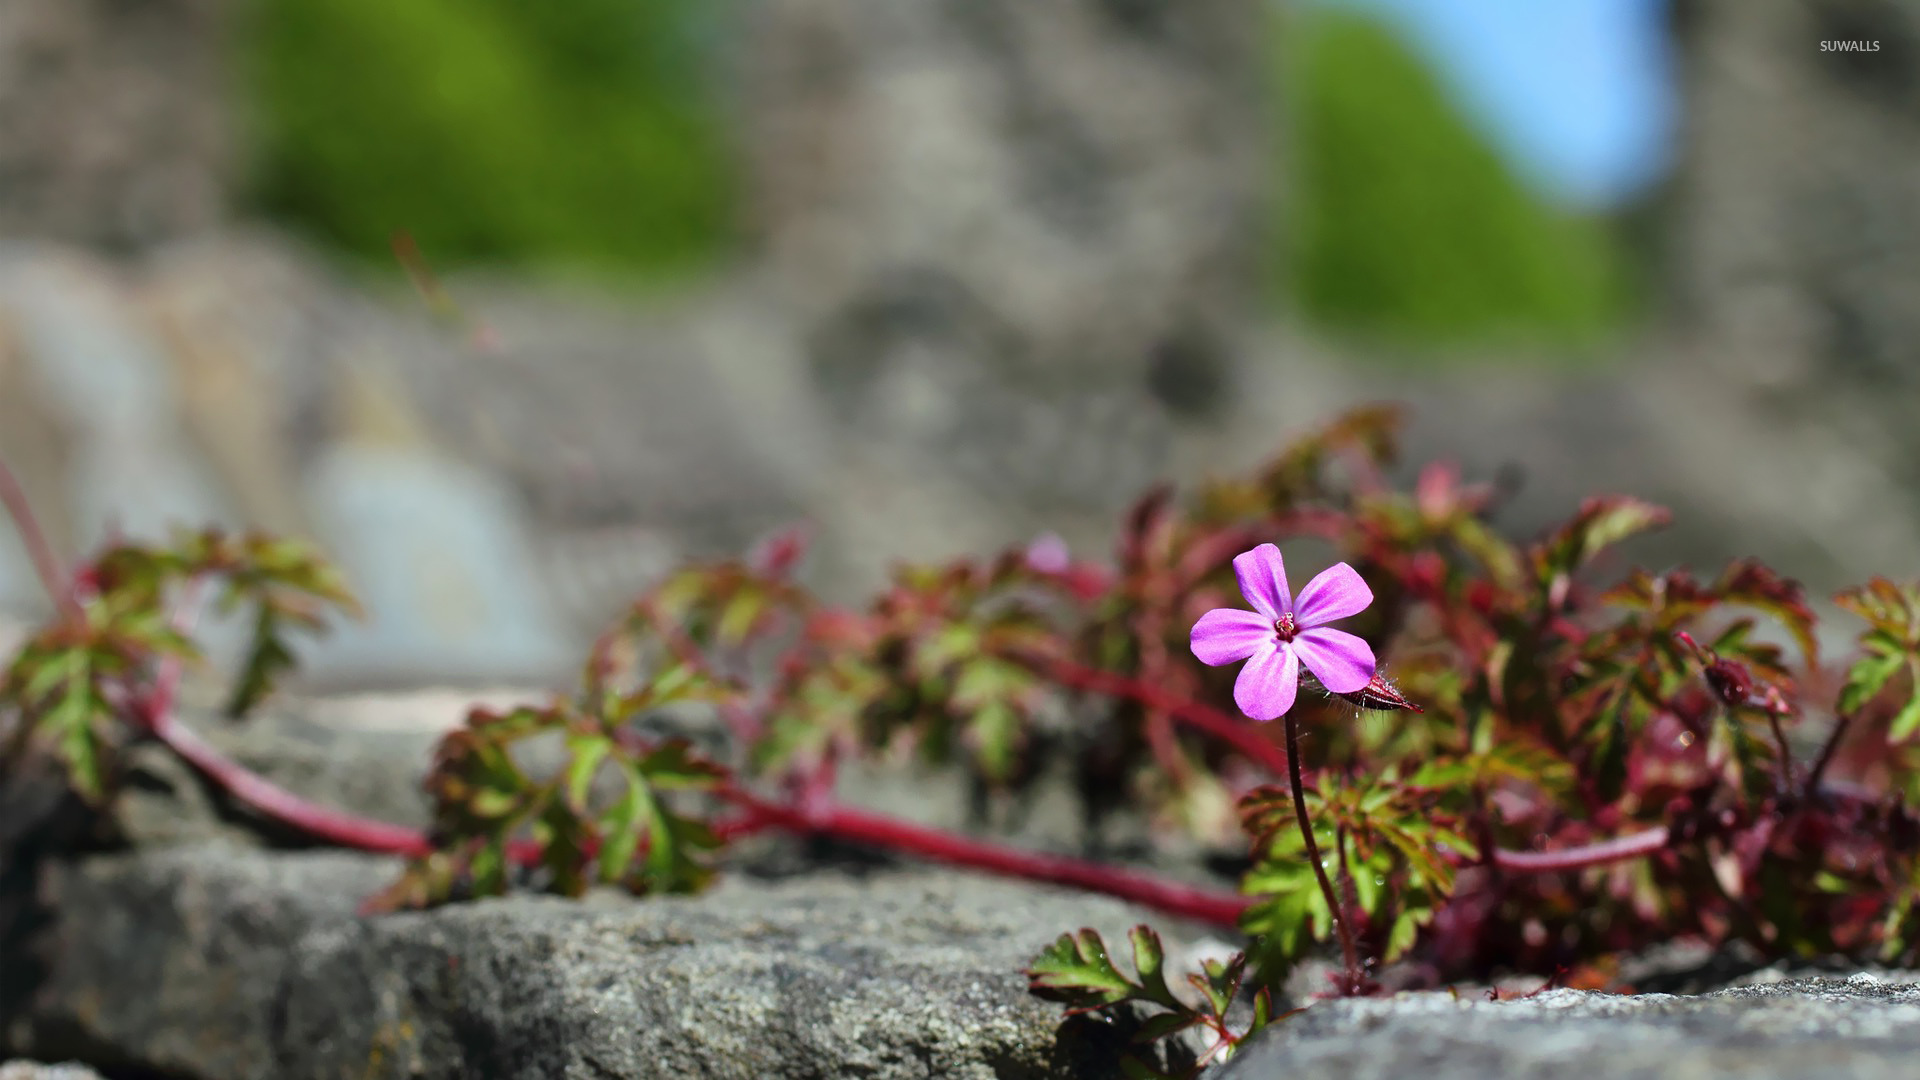 Small pink flower wallpaper   Flower wallpapers   20469 1366x768